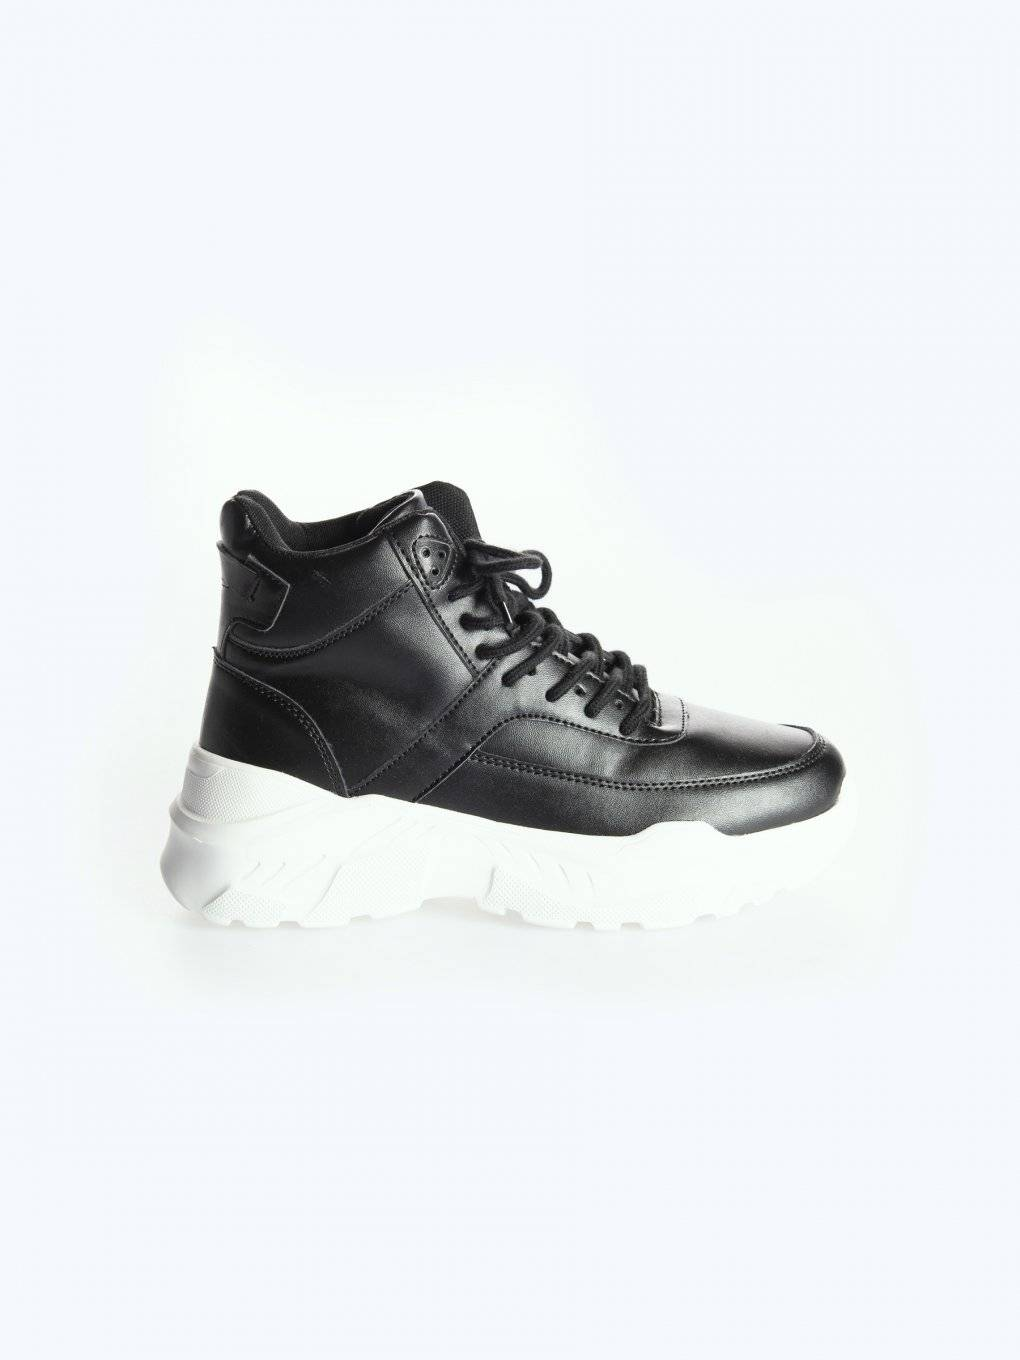 High-top chunky sneakers